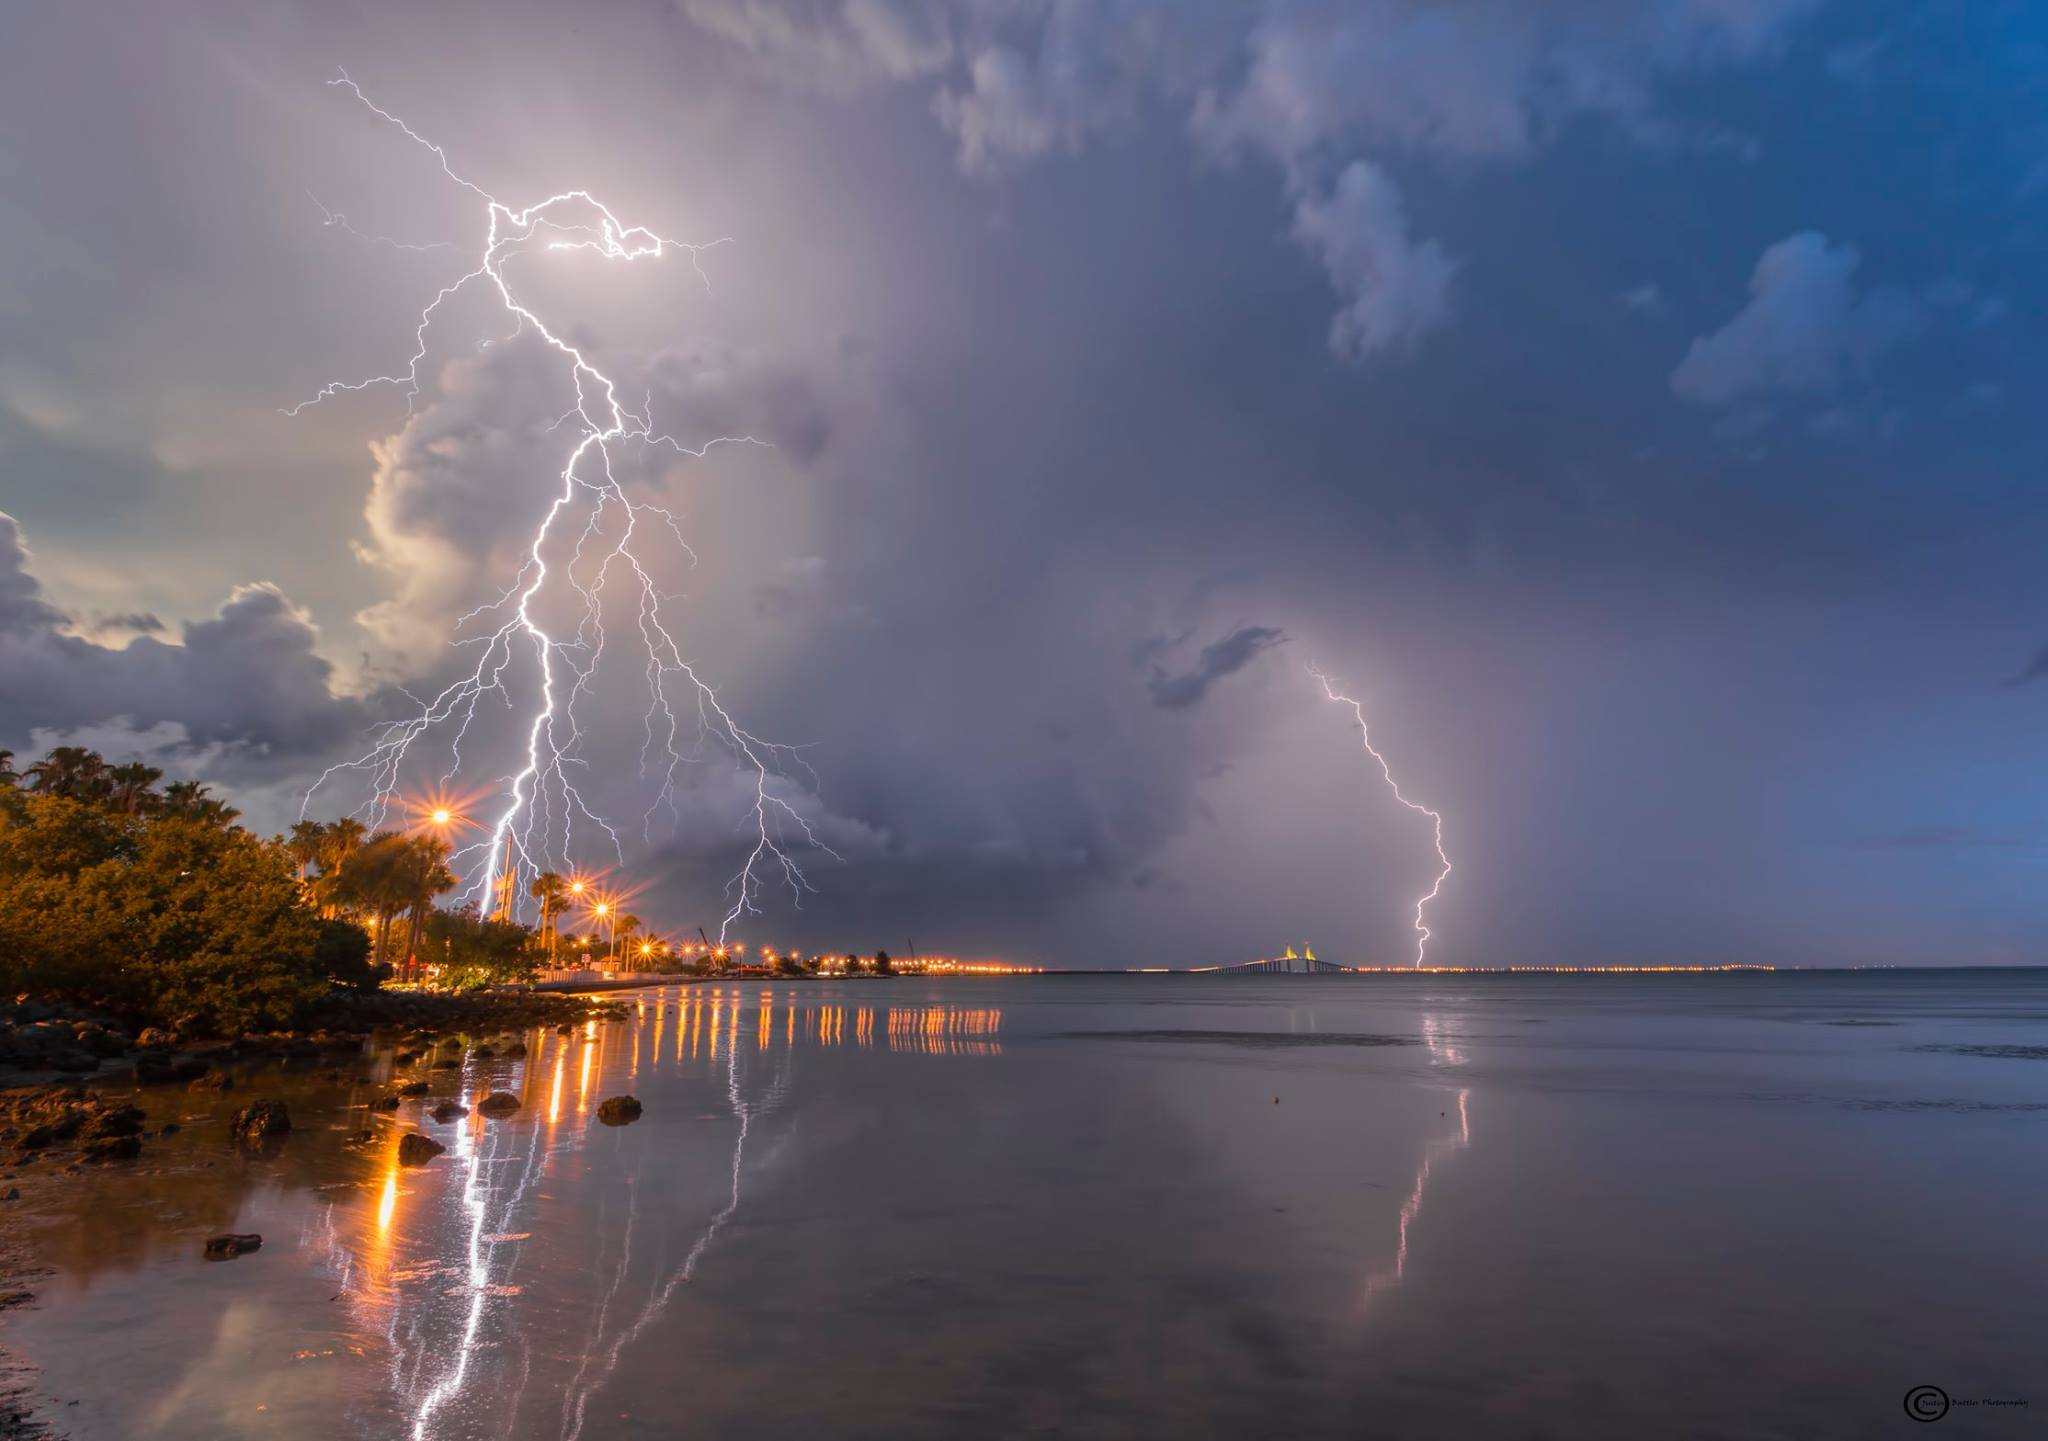 lightning picture, best lightning picture, incredible lightning picture, lightning picture justin battles, lightning picture florida, lightning picture florida july 2016